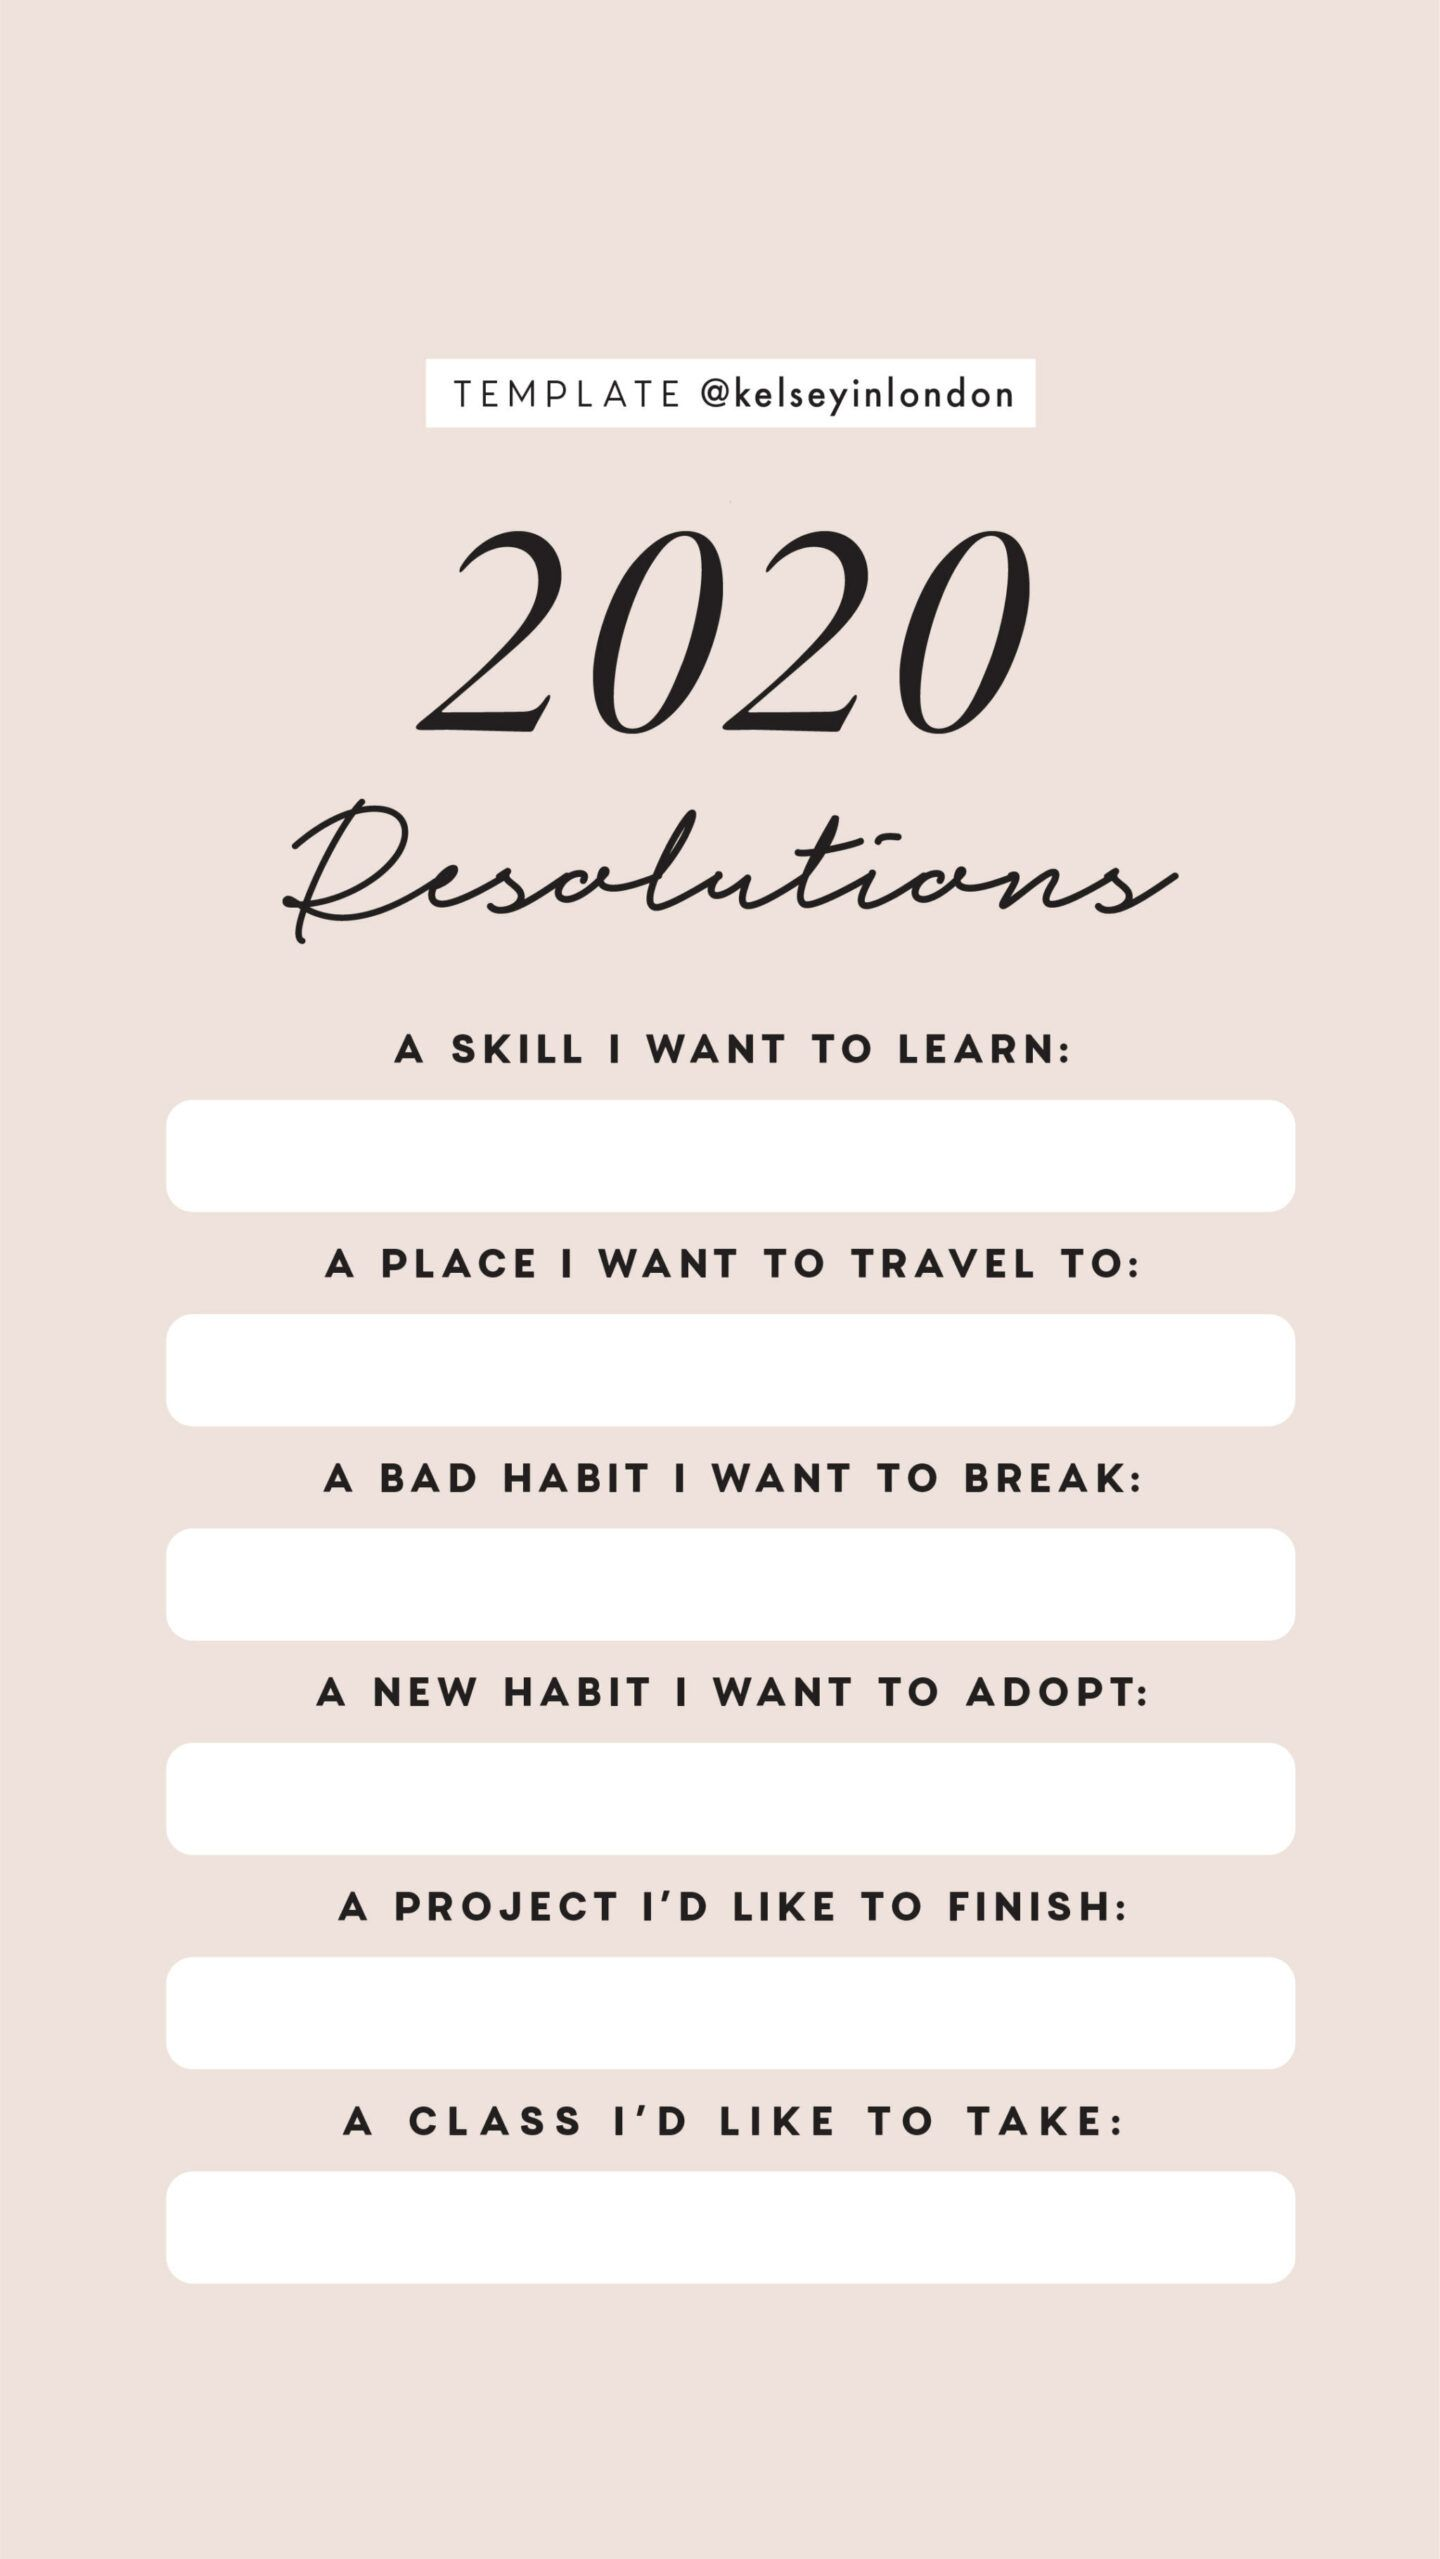 15 Diy Gifts New Year Resolution Diy Gifts New Year Good New Year S Resolutions Instagram Story Questions